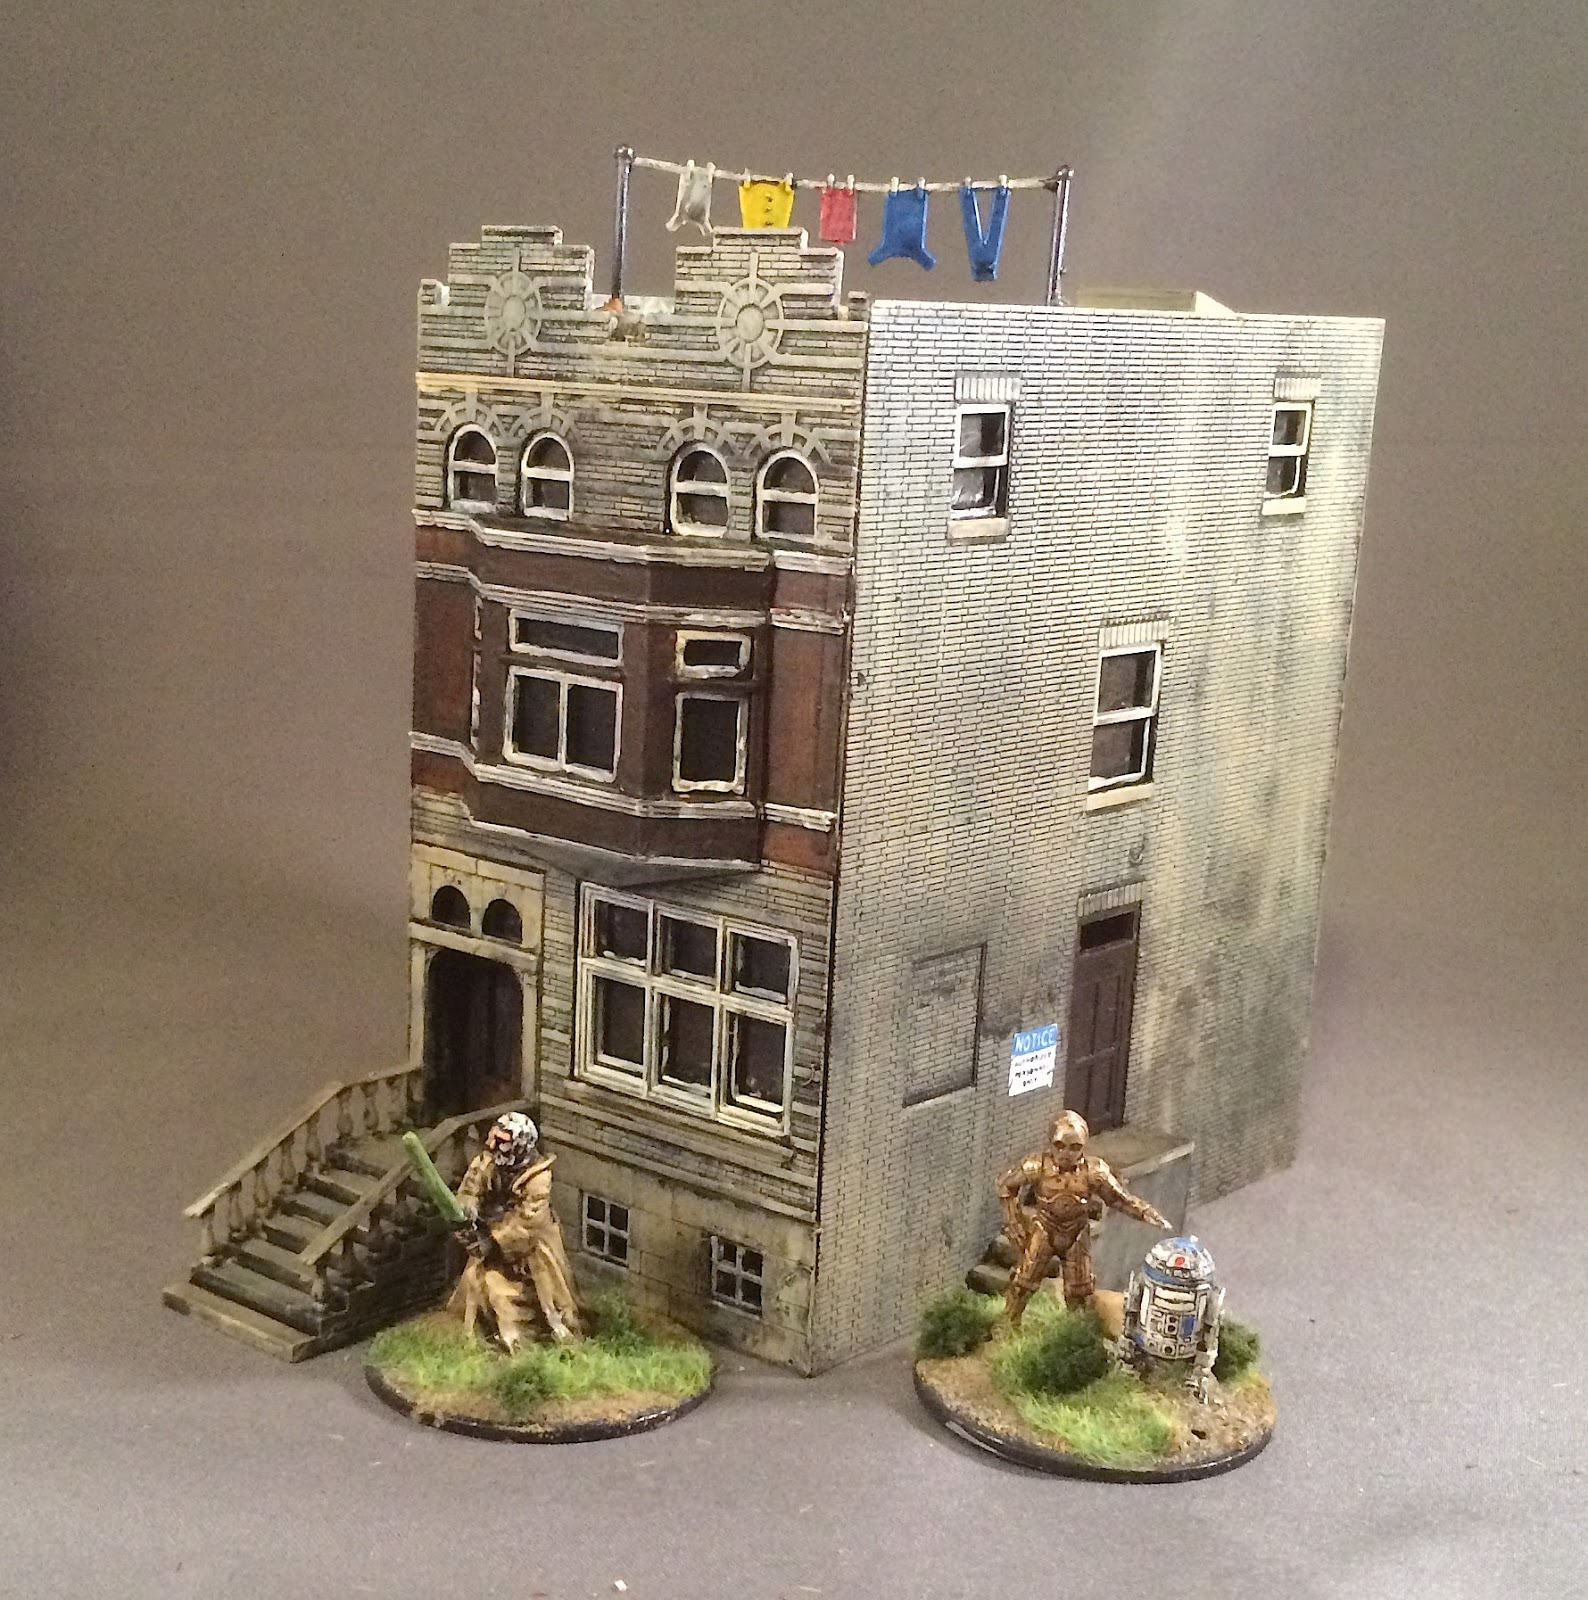 Bob S Miniature Wargaming Blog More Ho Scale Buildings